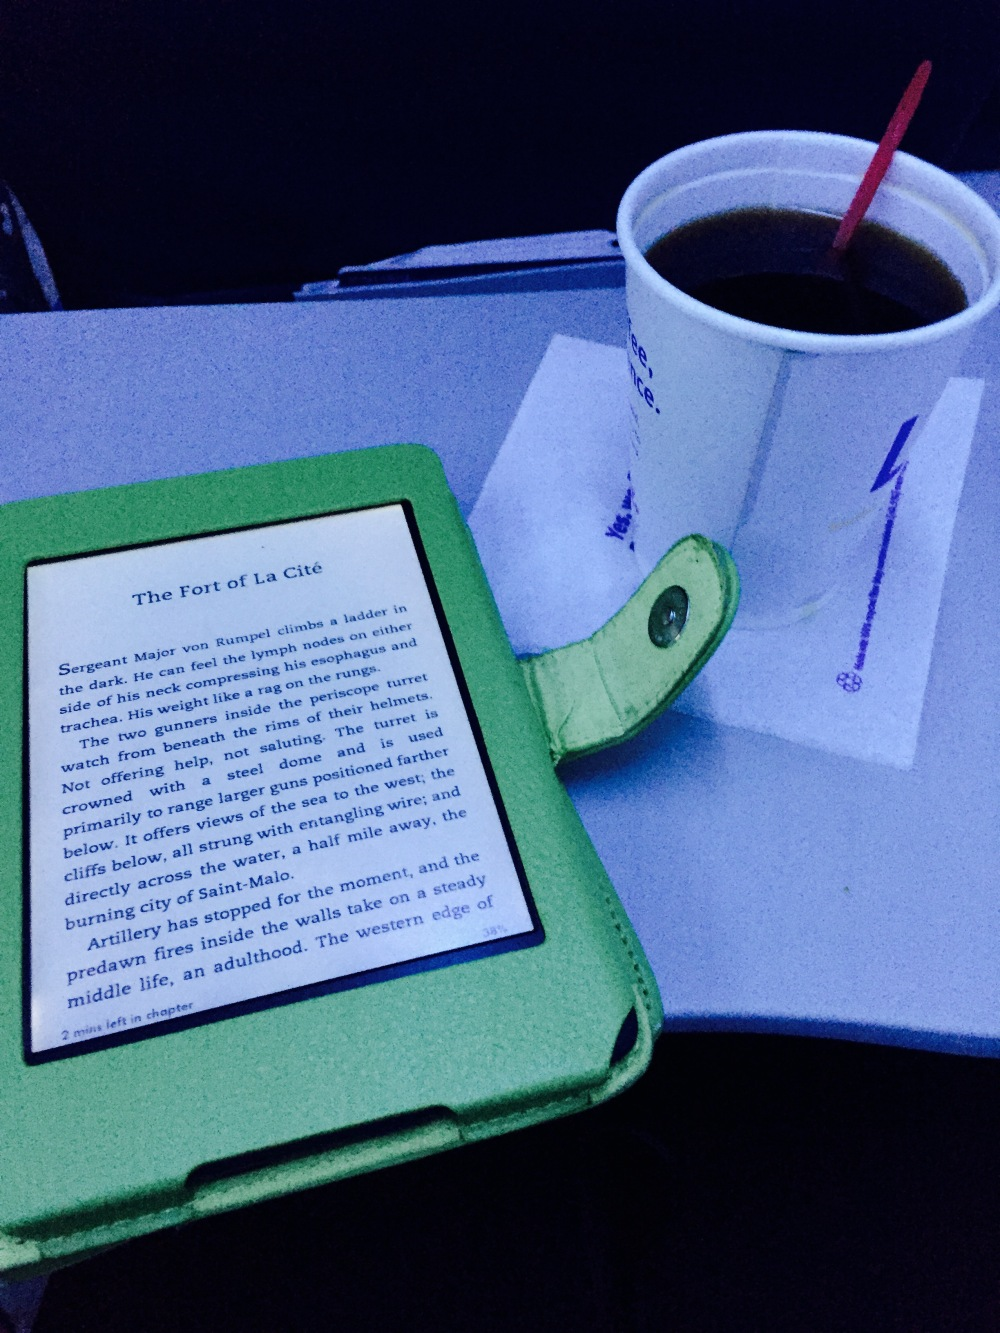 many things go better with a good book than airplane coffee